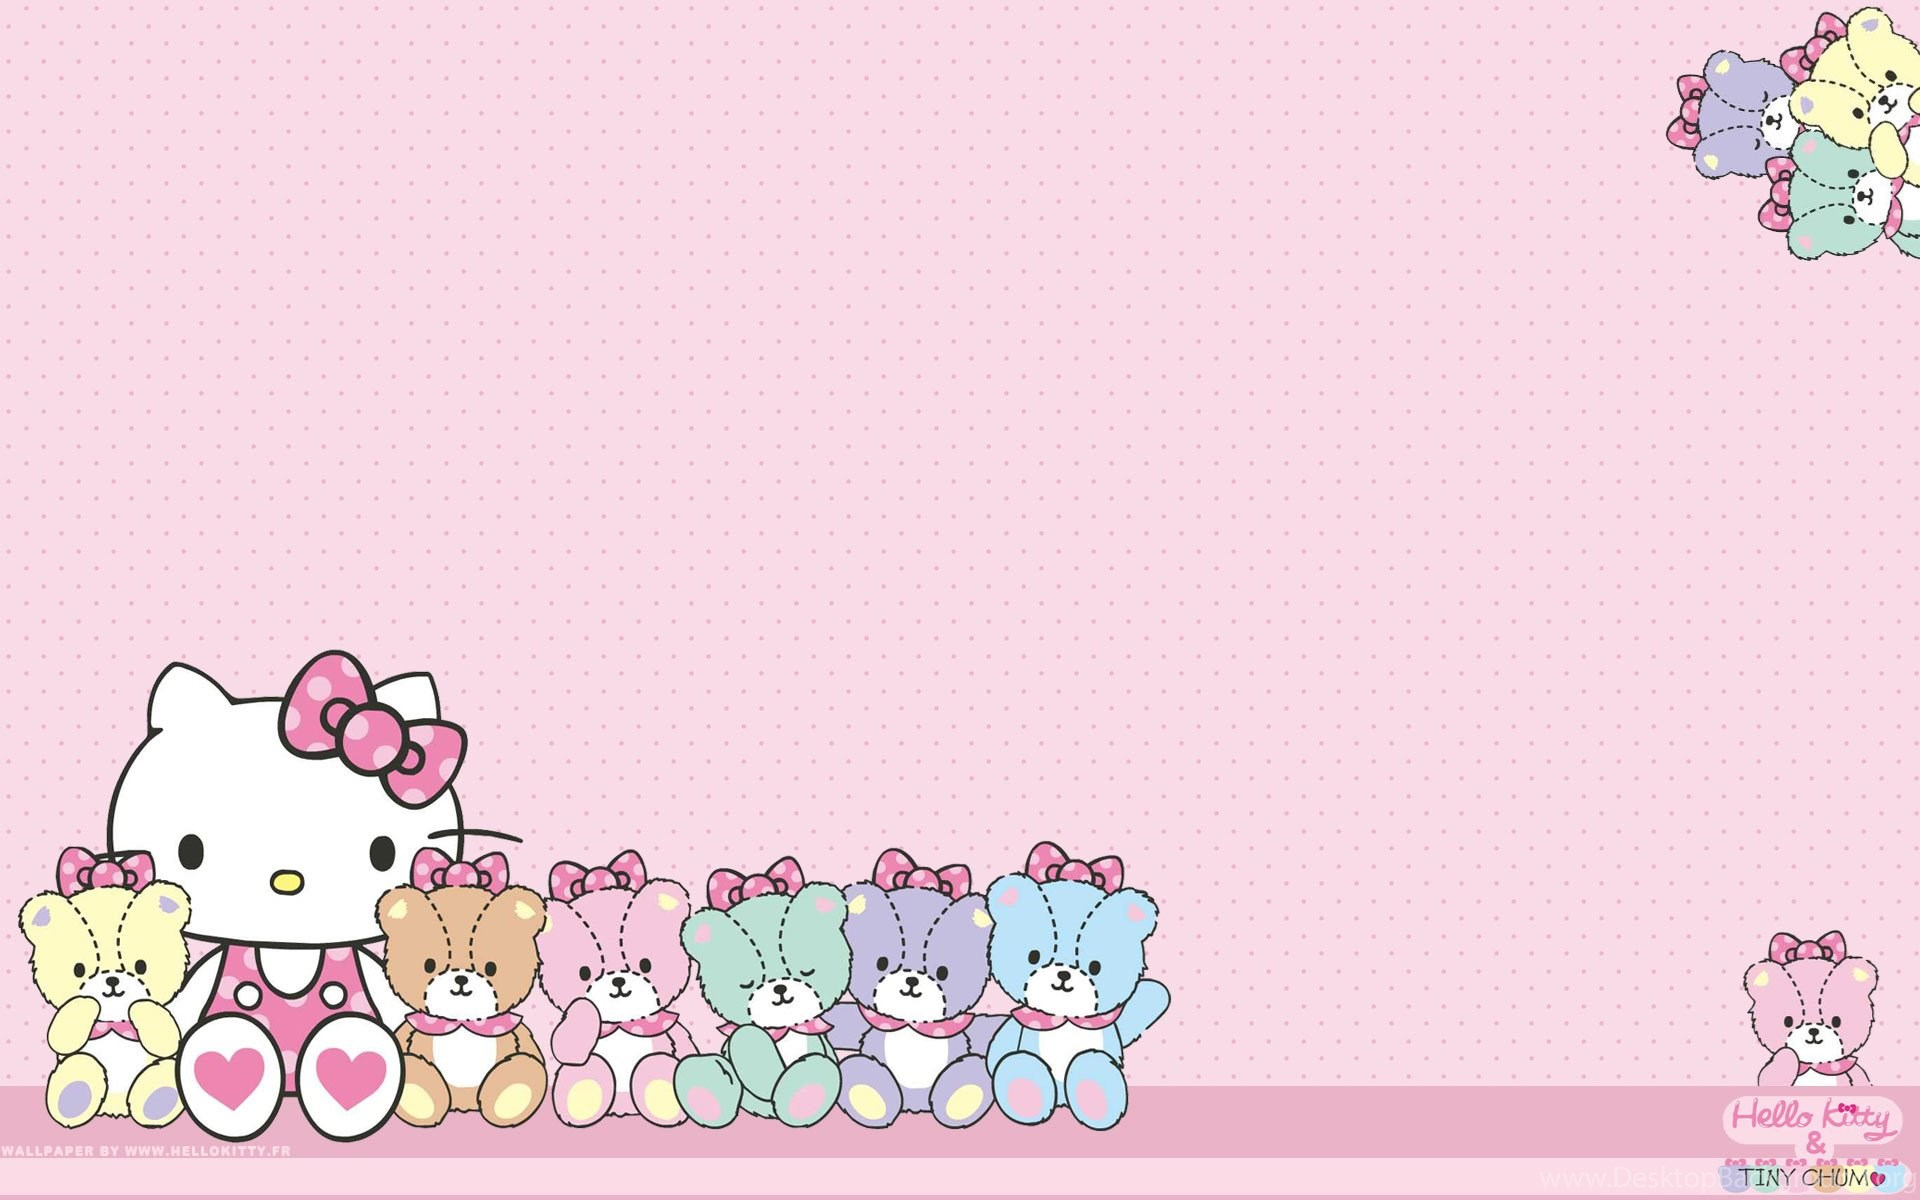 Cool Wallpaper Hello Kitty Ipad Air - 613466_sanrio-hello-kitty-desktop-wallpaper-images_1920x1200_h  Perfect Image Reference_852915.jpg